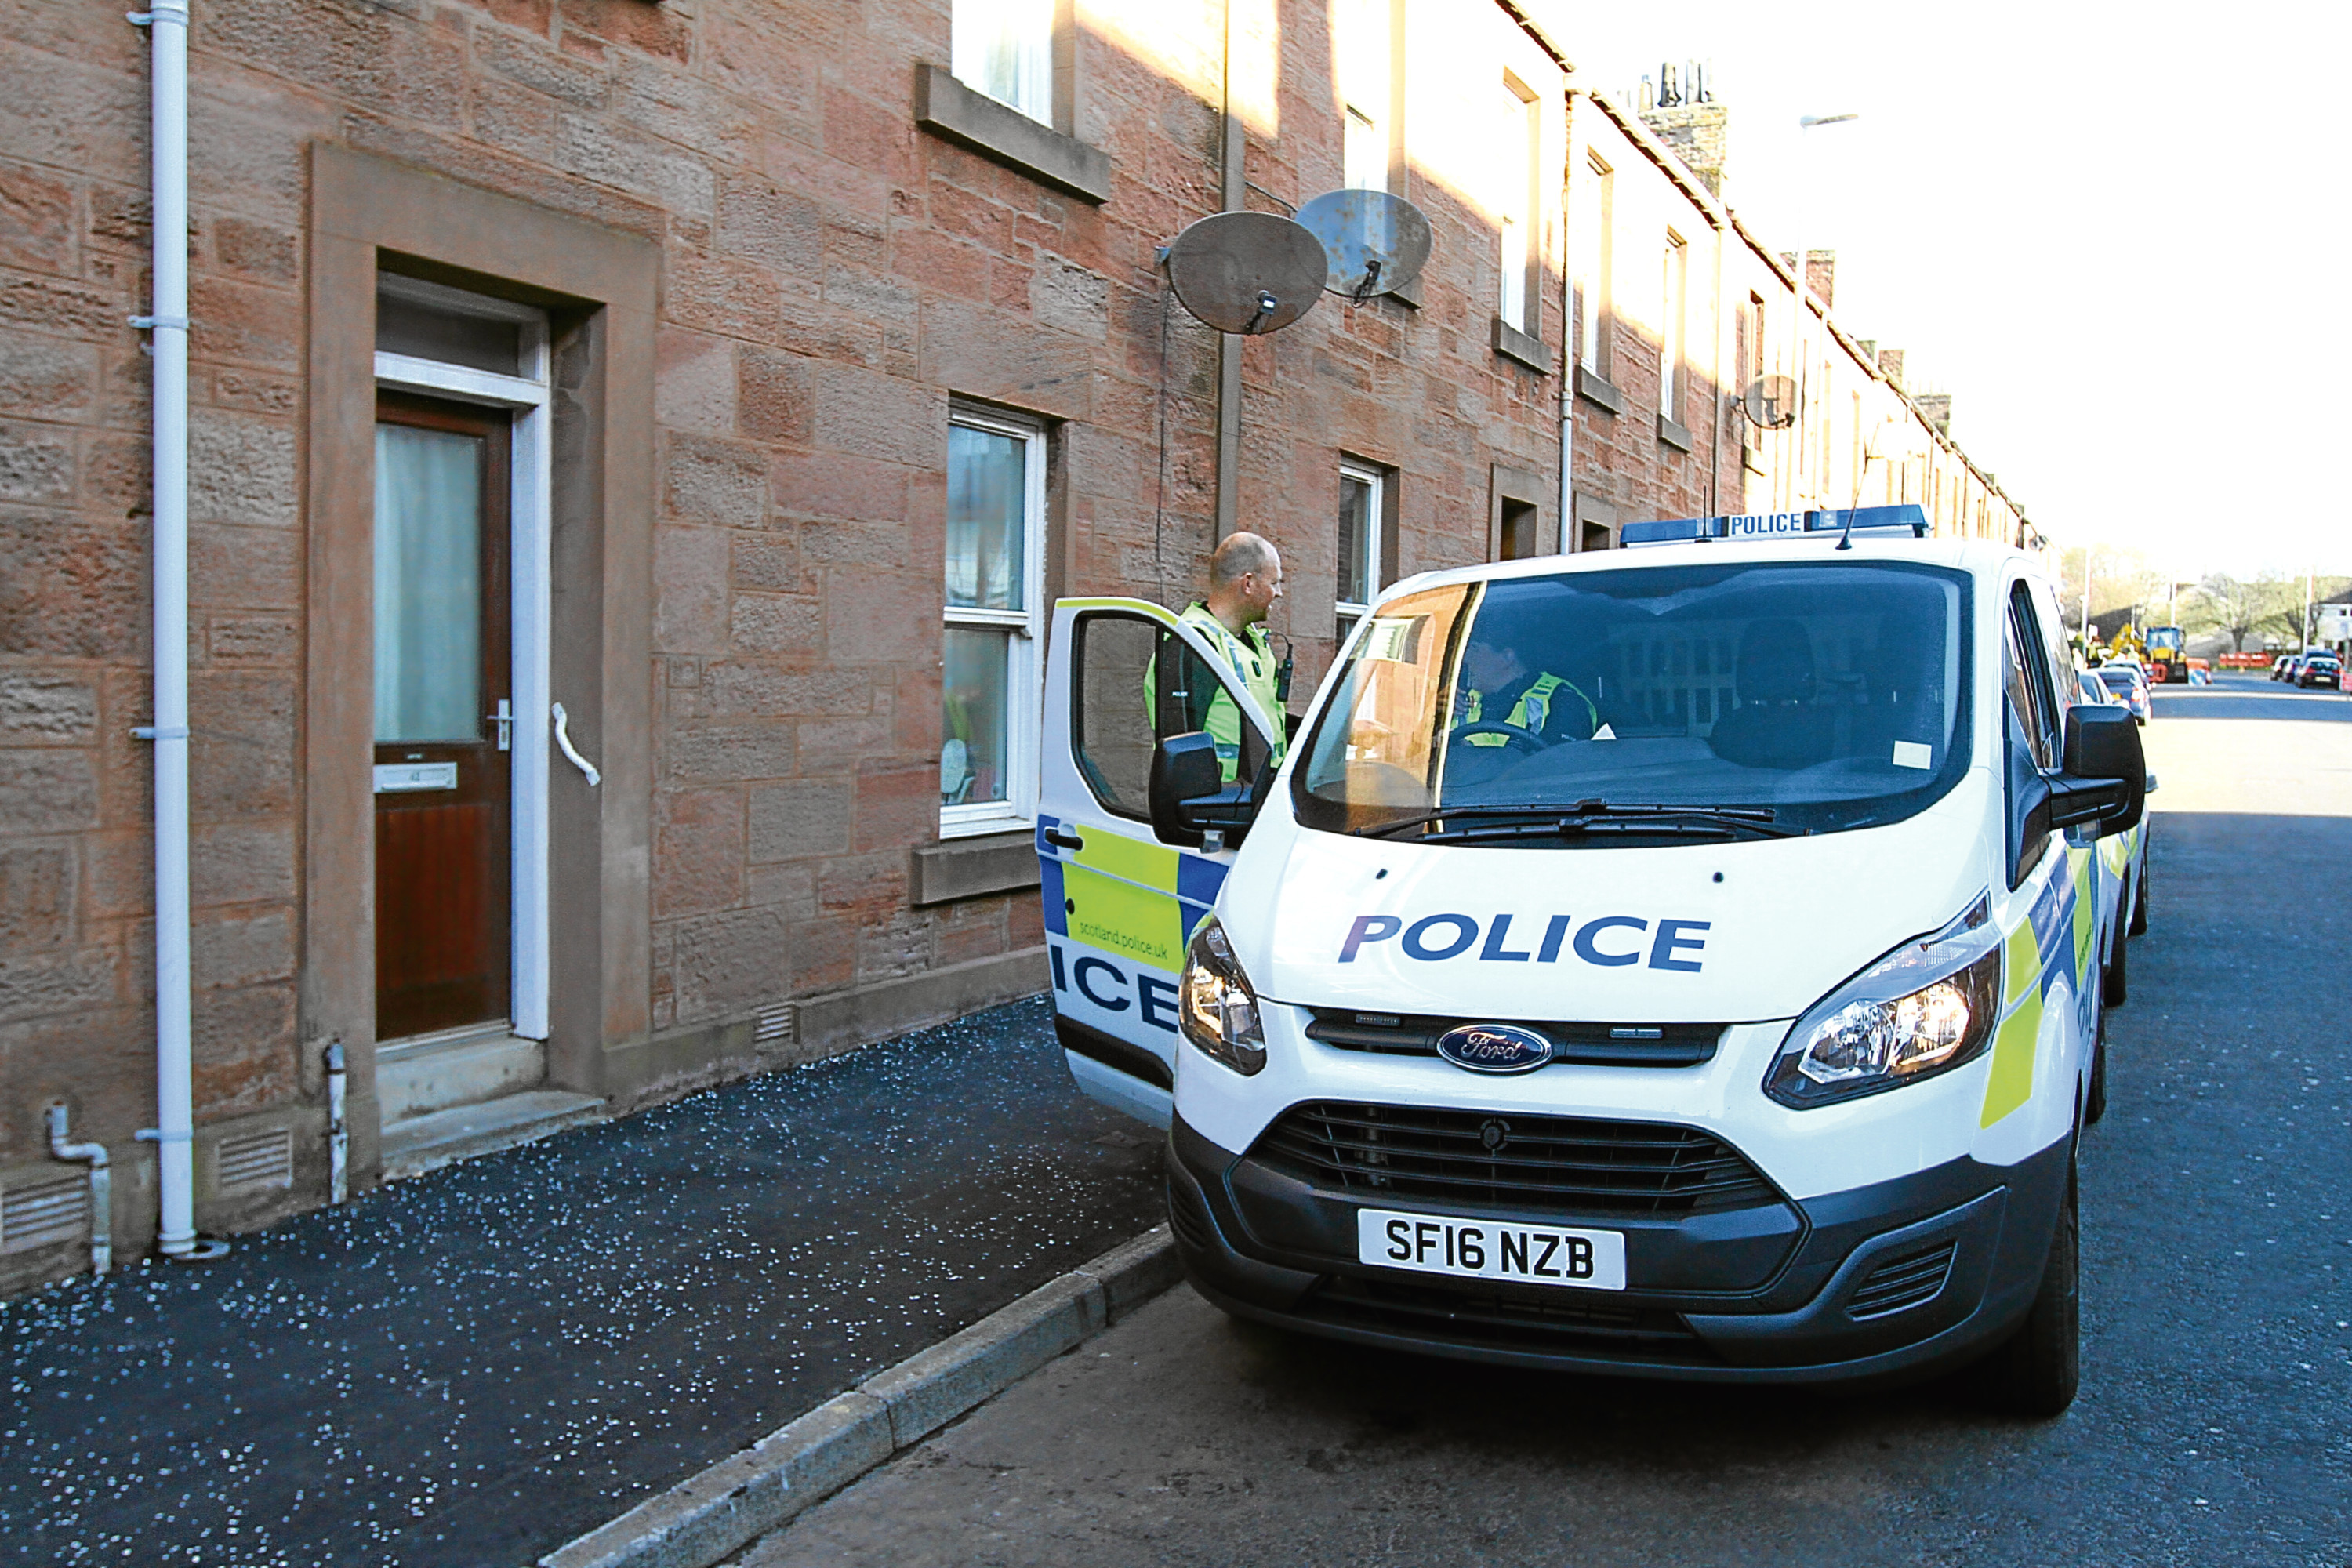 The alleged incident took place at St Vigeans Road, Arbroath